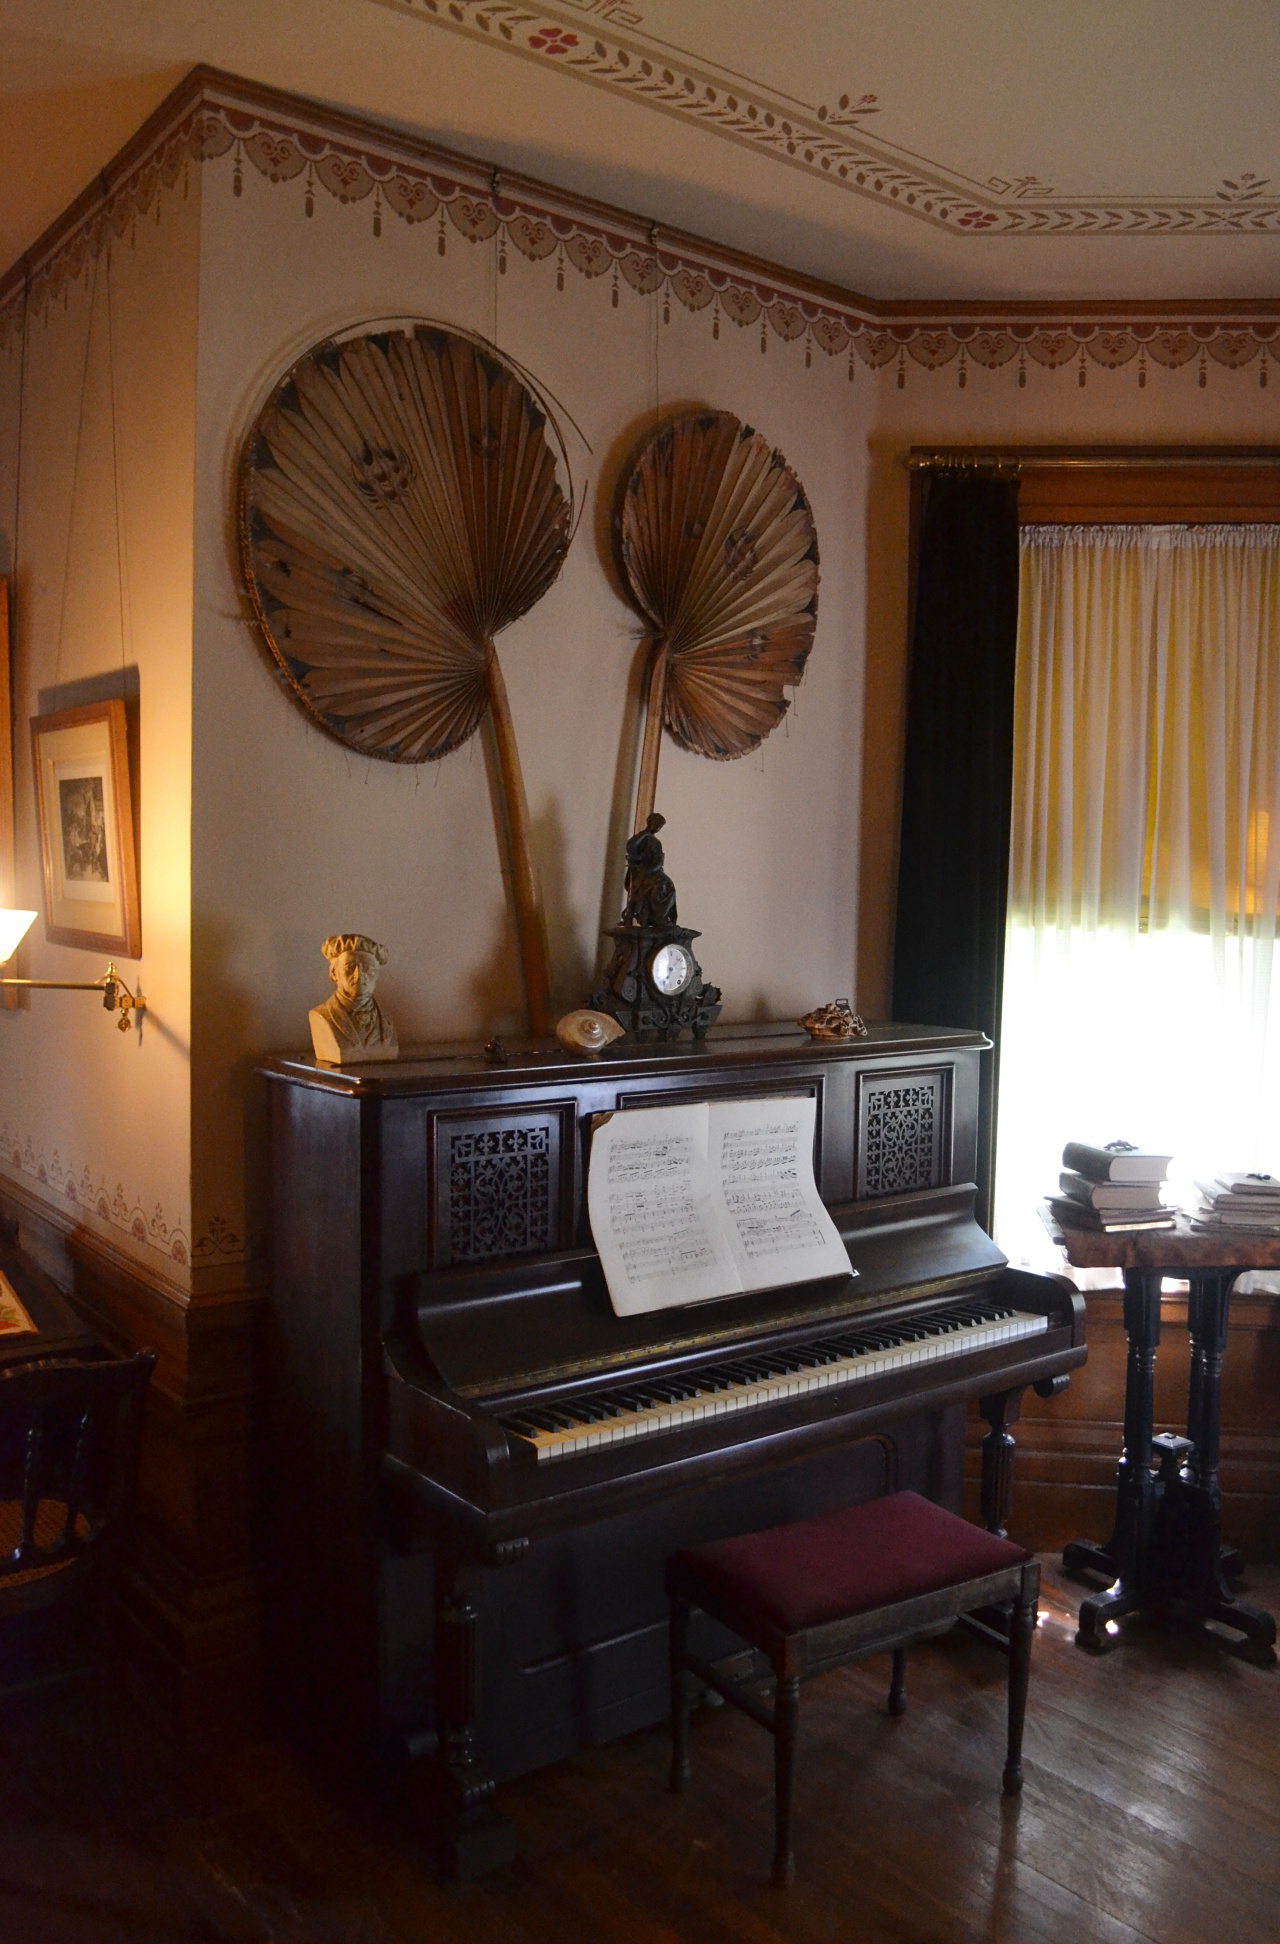 The Fischer upright piano in the schoolroom was given to the girls for Christmas in 1880.